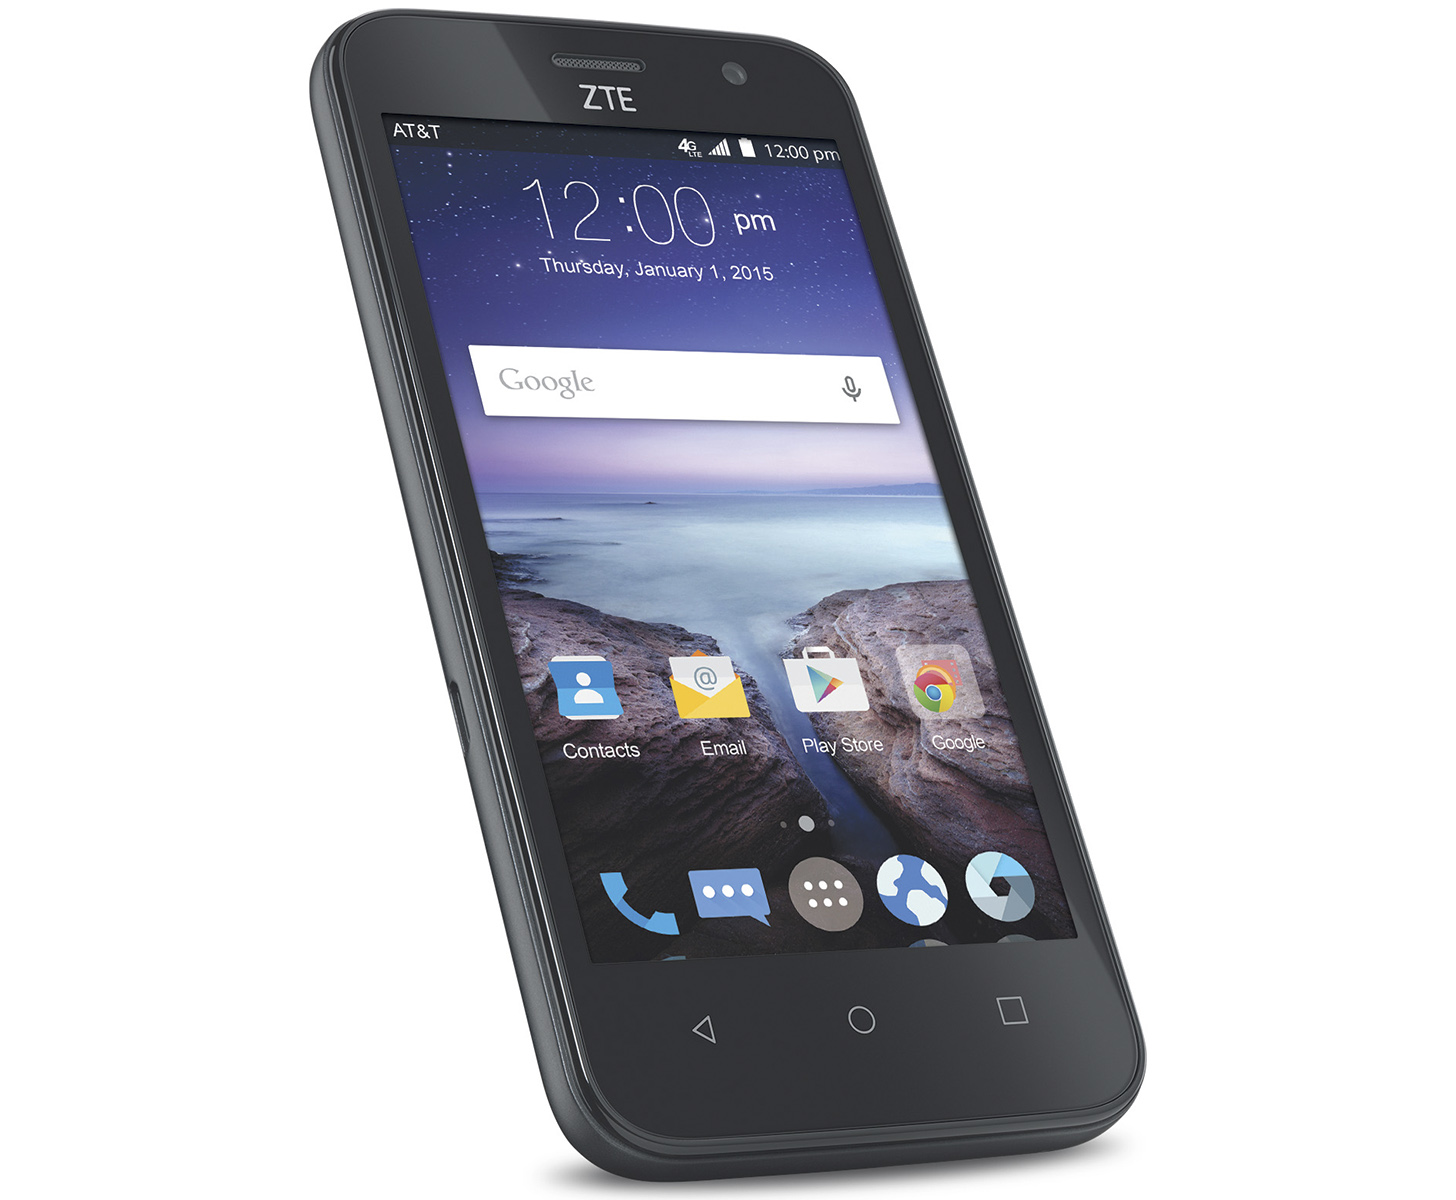 Zte Maven Hitting At T With Android 5 1 Zte Sonata 2 To